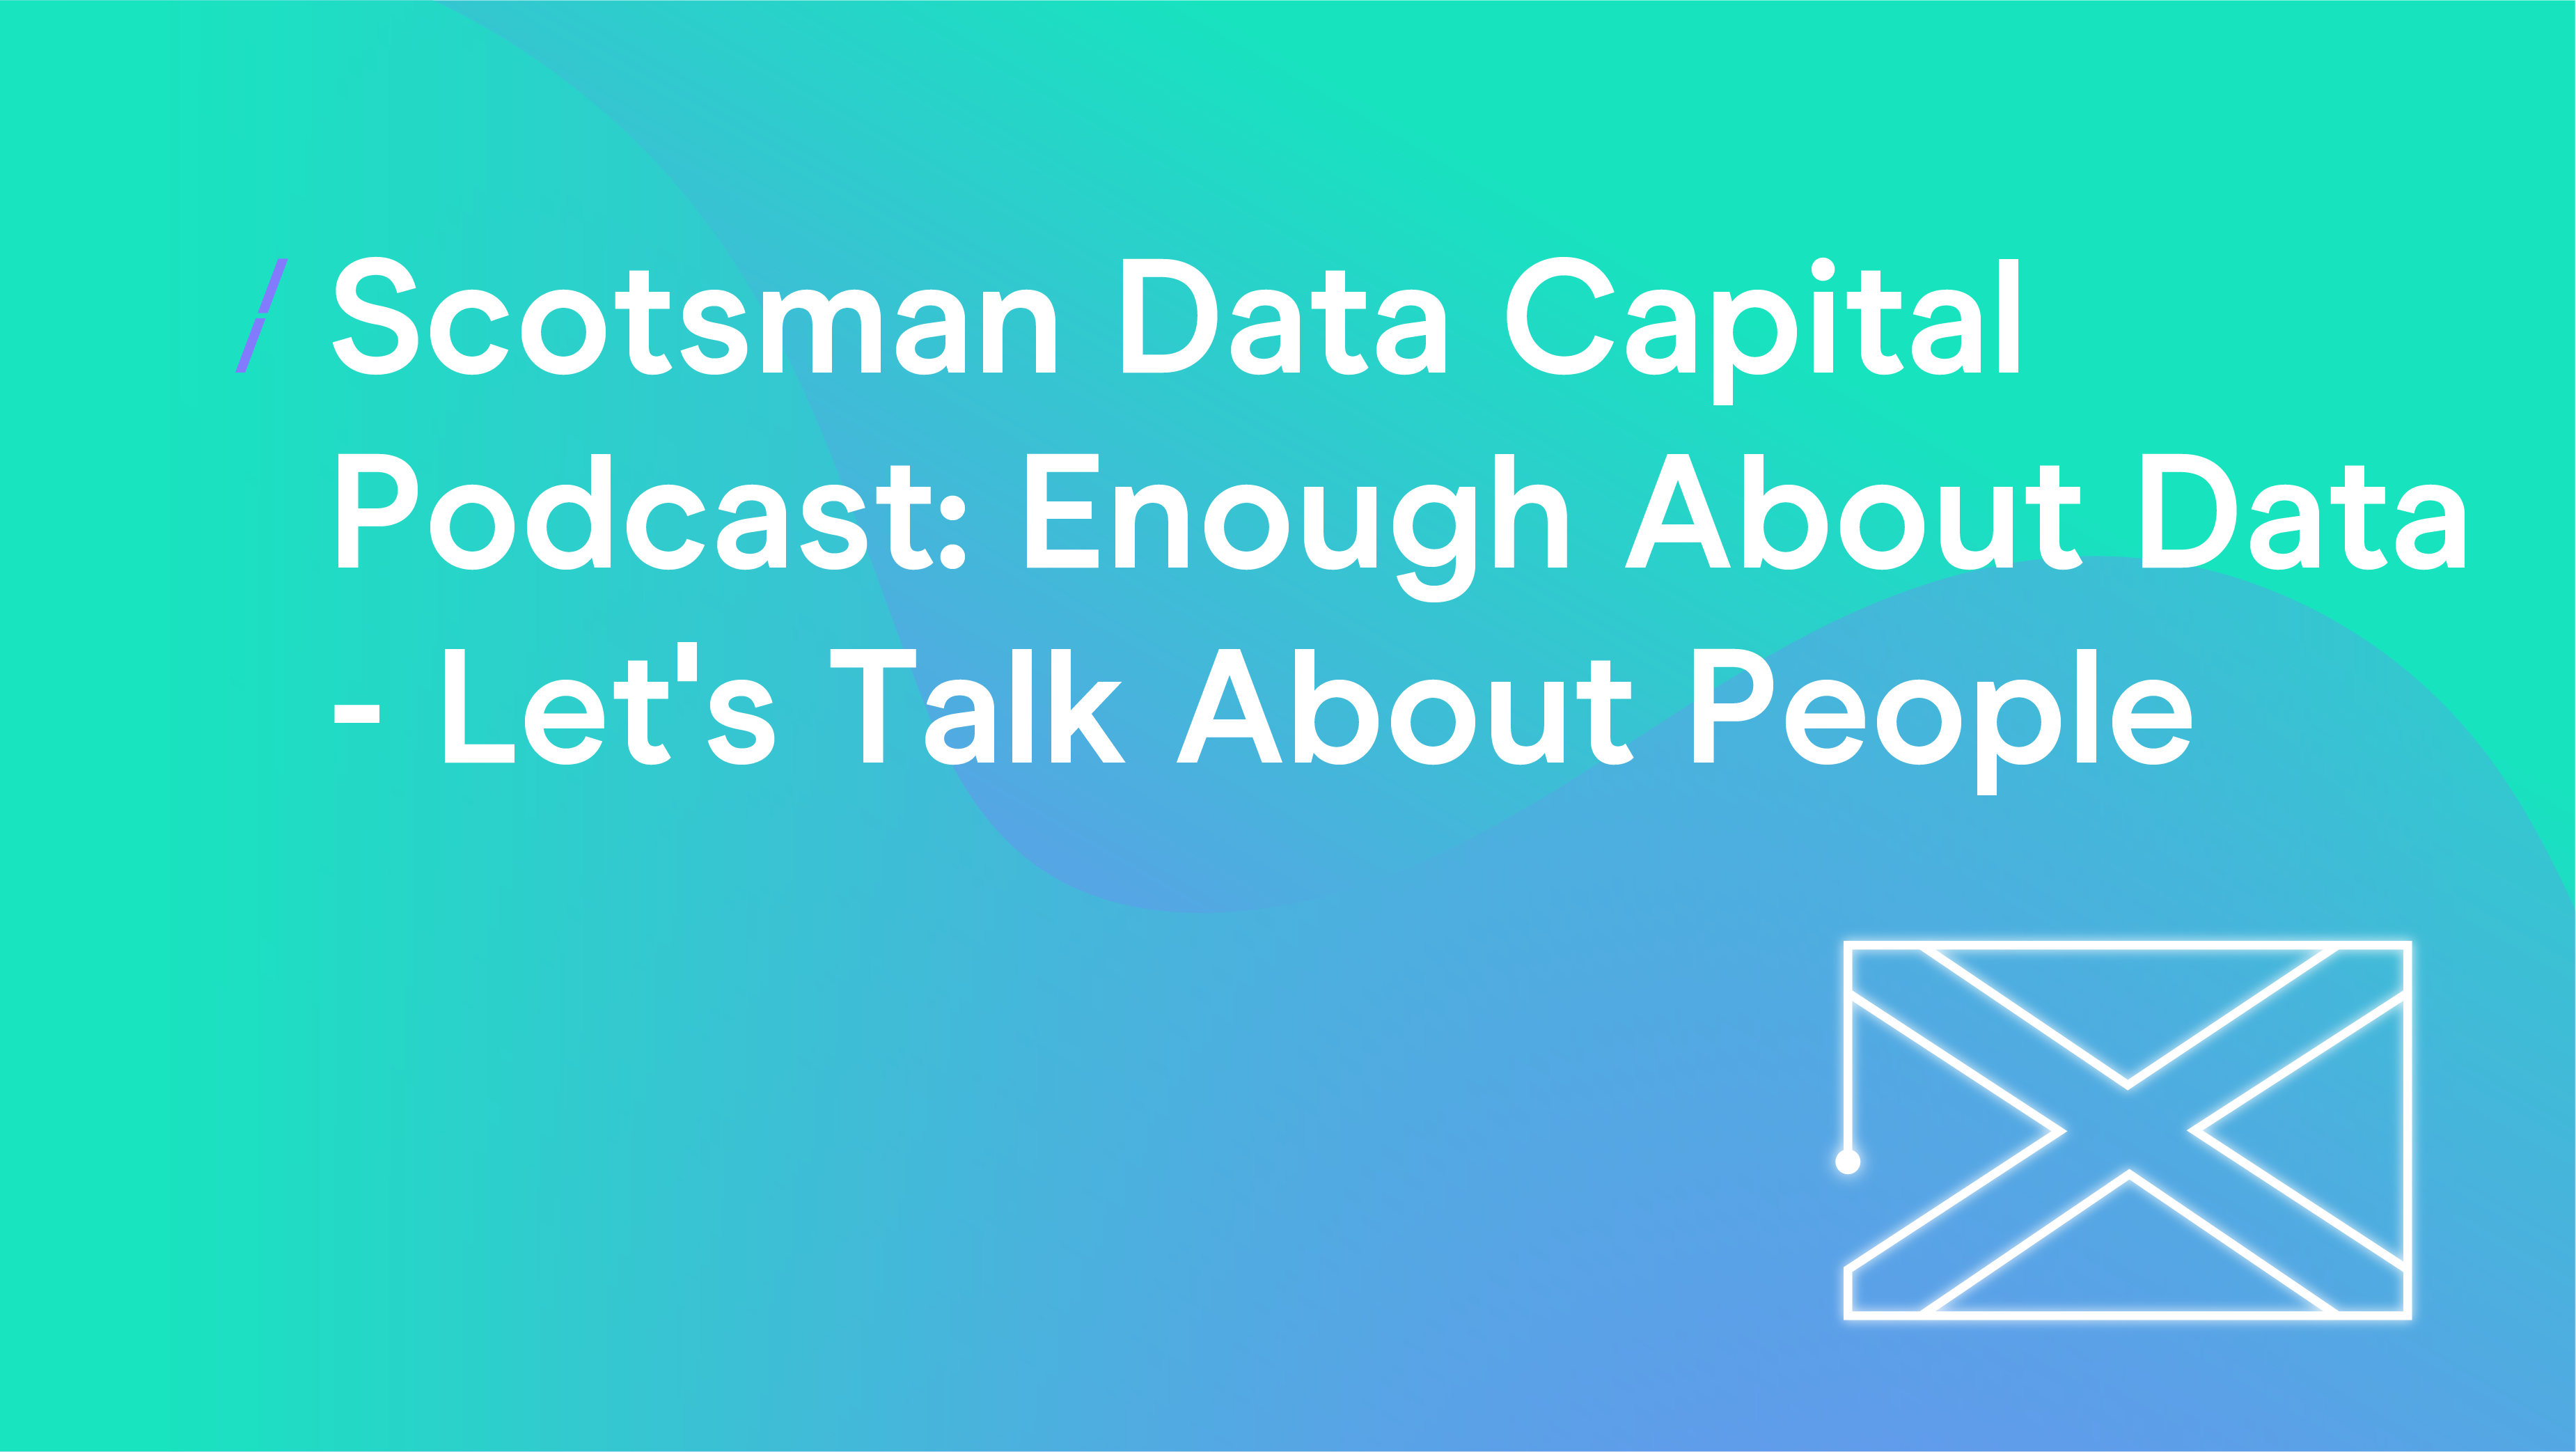 Scotsman Data Capital Podcast.png